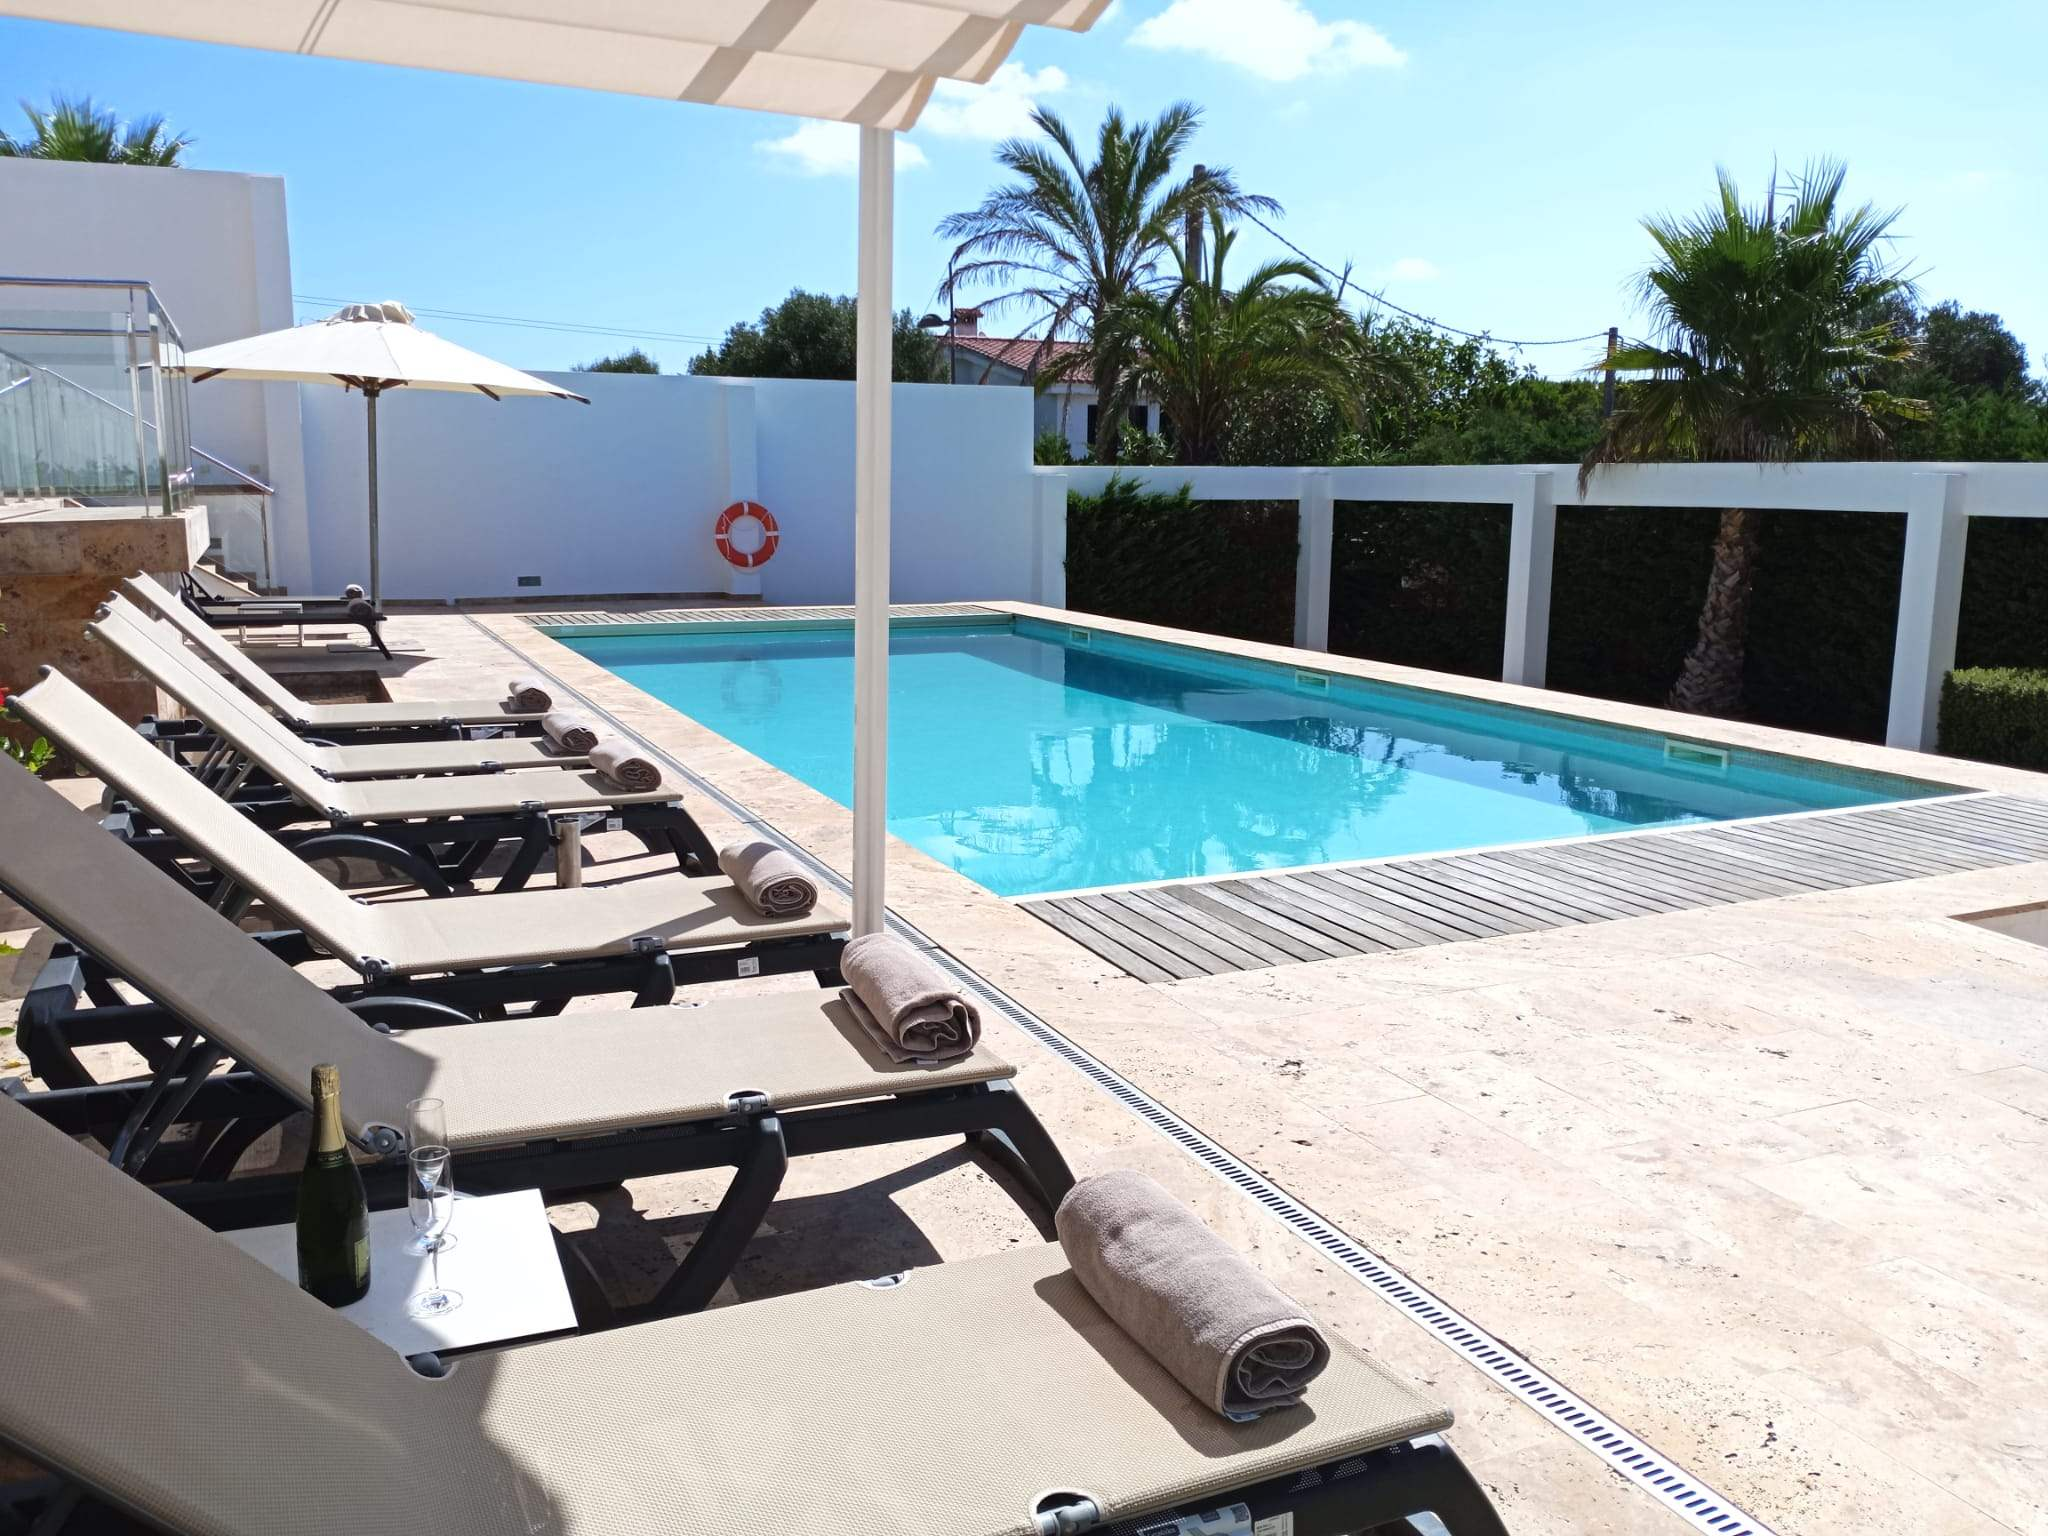 Casa Pitiusa, 5 Bedroom rate, 5 bedroom villa in Mahon, San Luis & South East, Menorca Photo #8